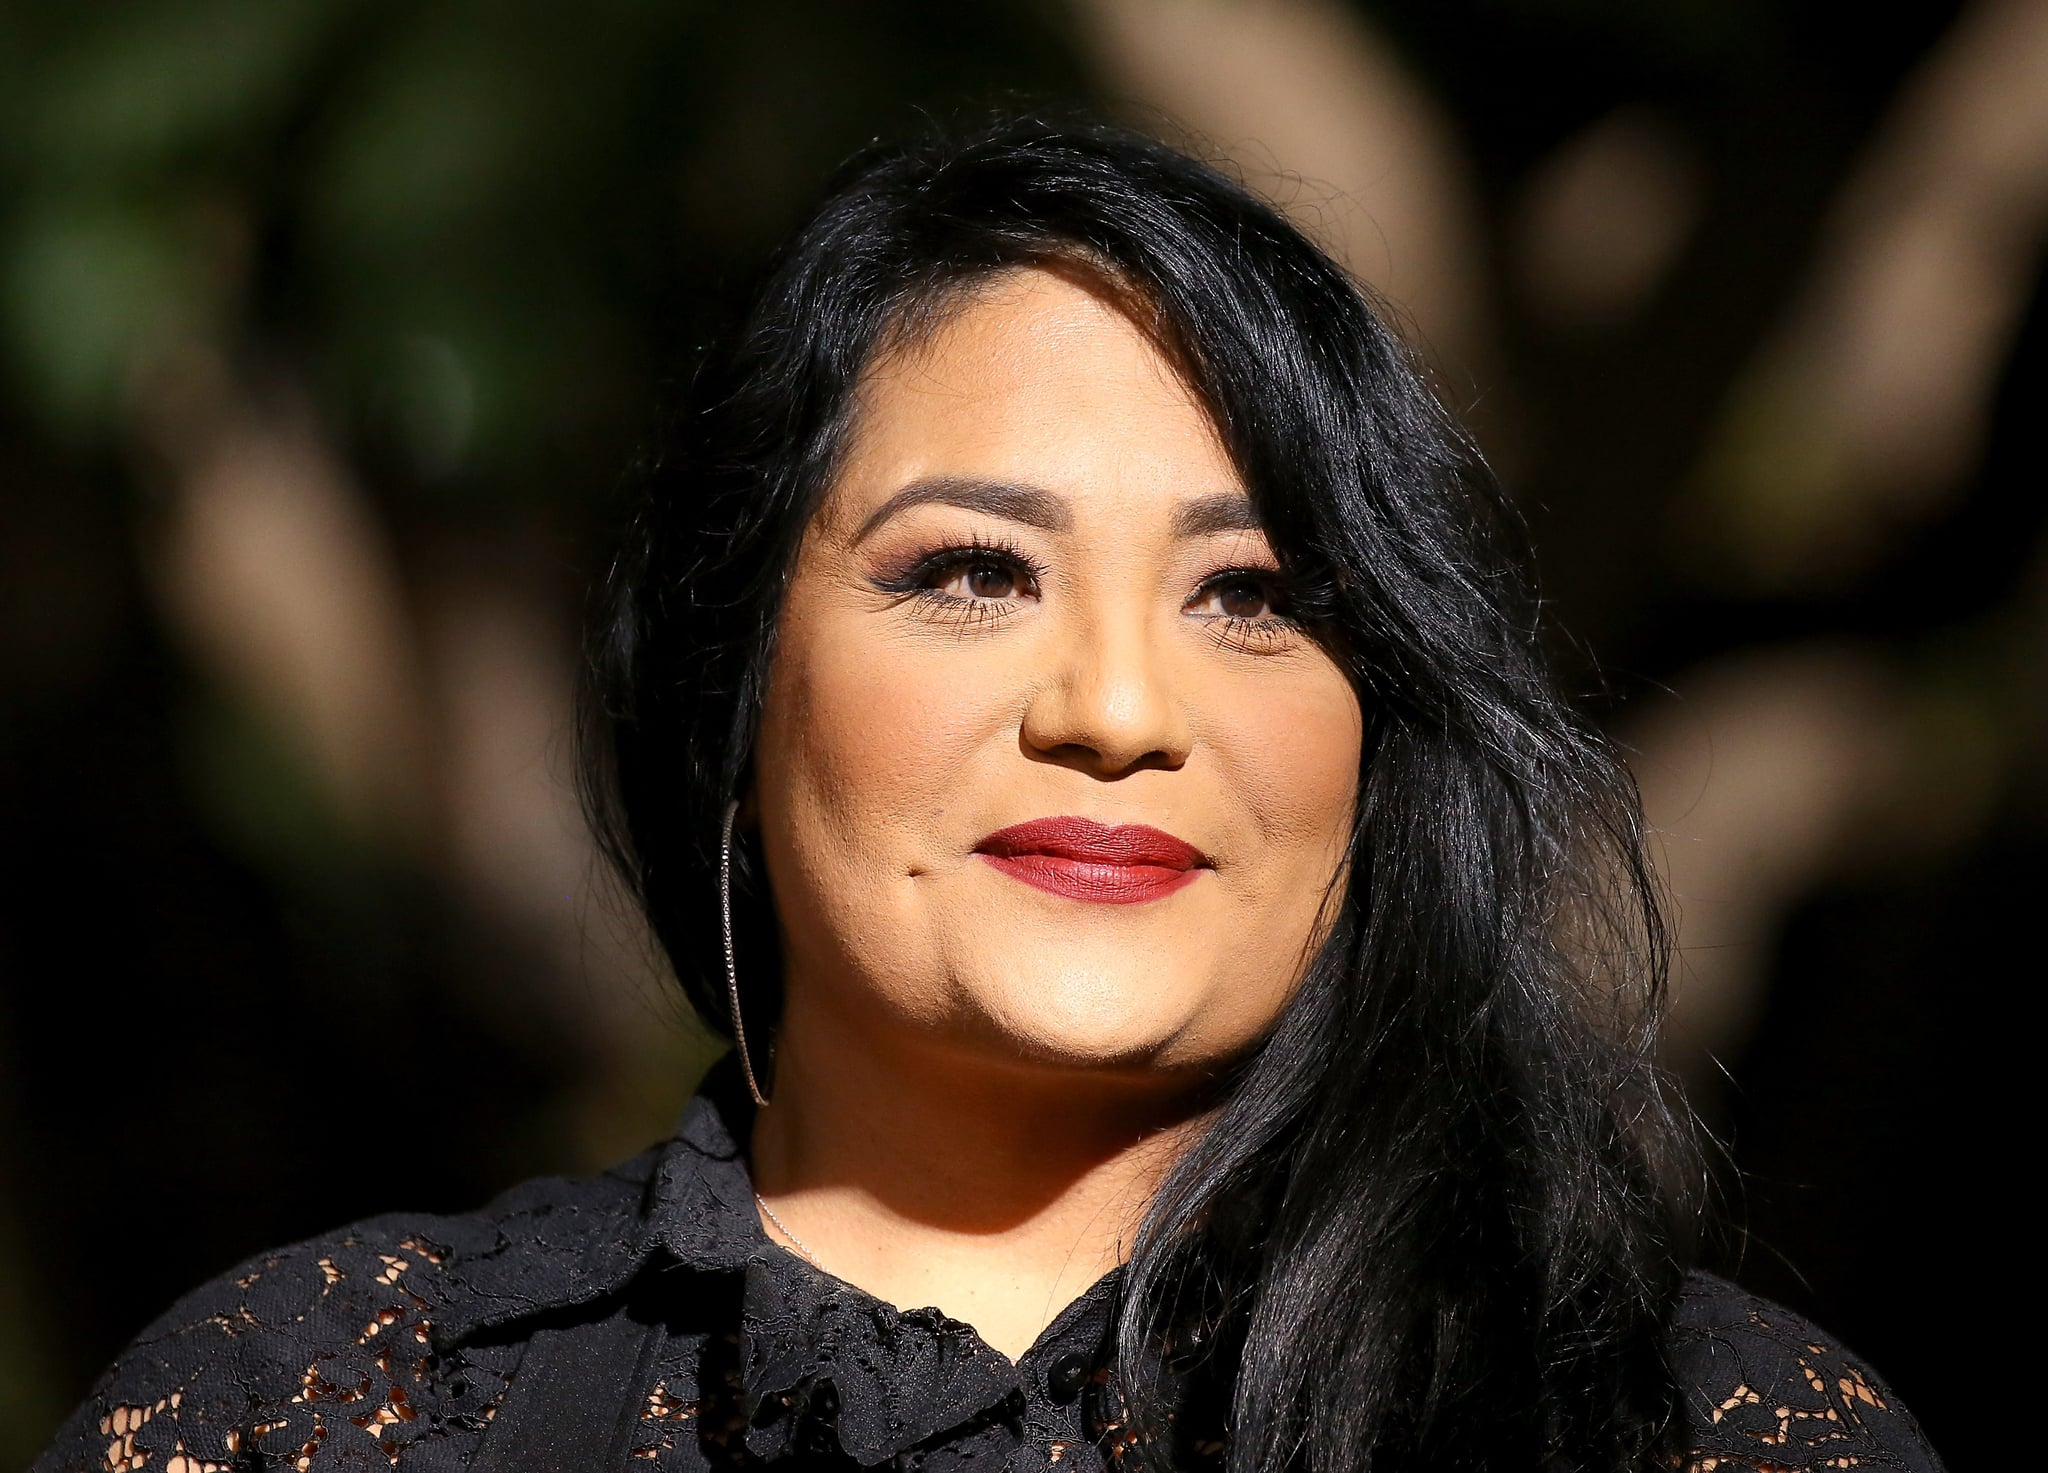 HOLLYWOOD, CA - NOVEMBER 03:  Suzette Quintanilla attends the ceremony honouring Selena Quintanilla with a posthumous Star on The Hollywood Walk of Fame held November 3, 2017 in Hollywood, California.  (Photo by Michael Tran/FilmMagic)